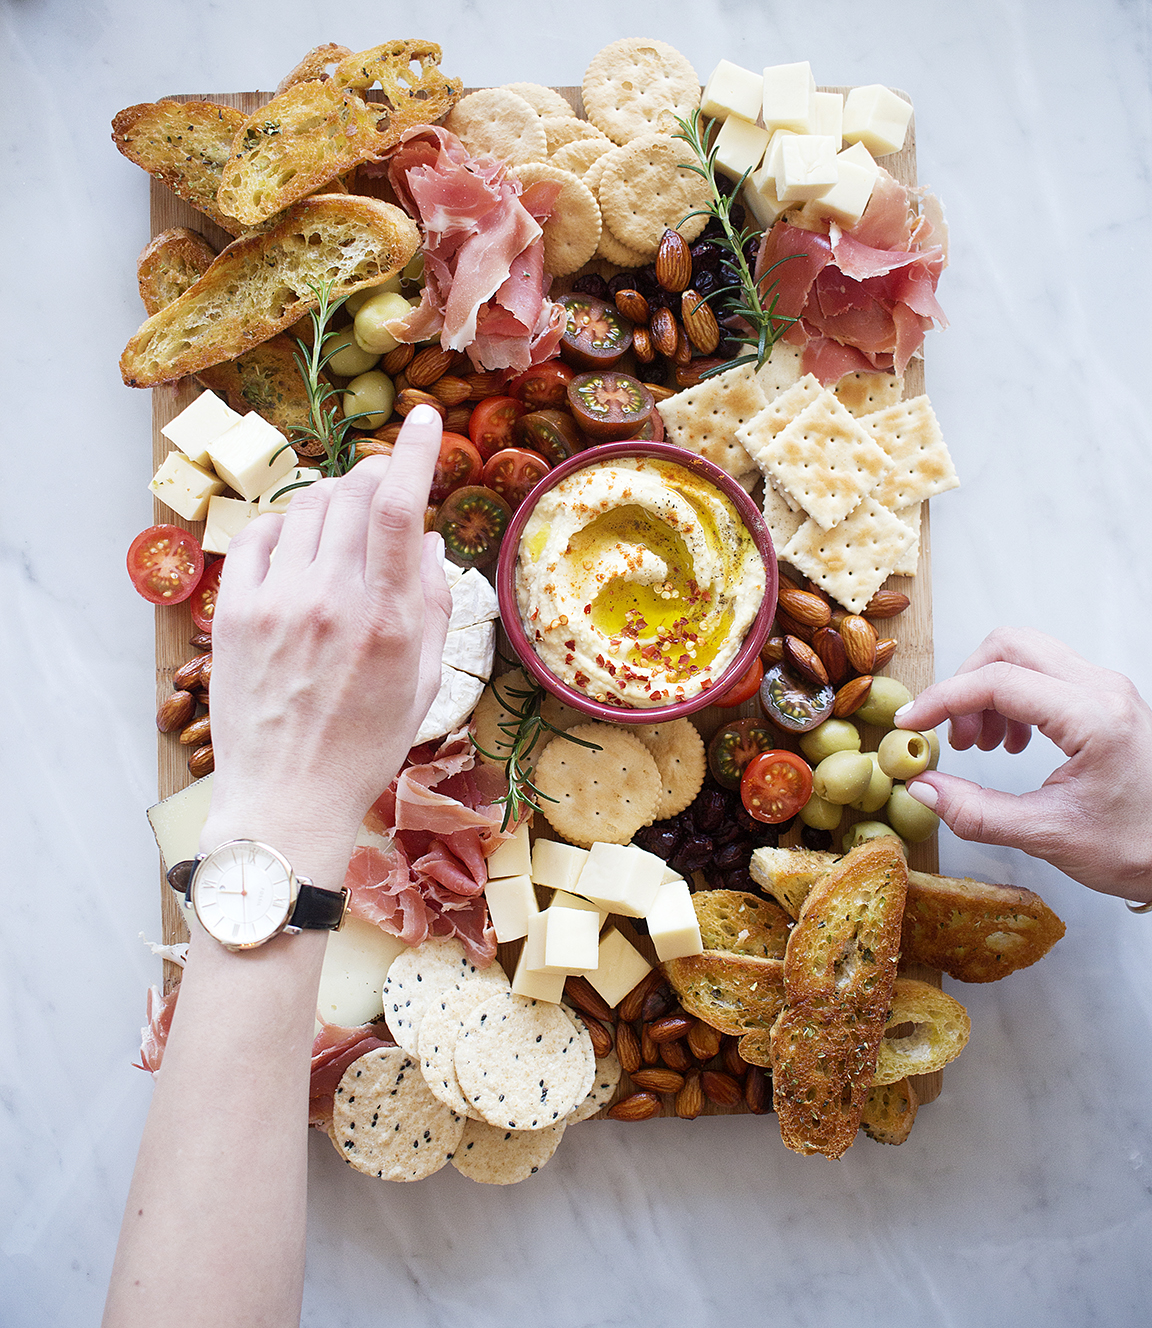 How To Make an Instagram-Worthy Cheese Board